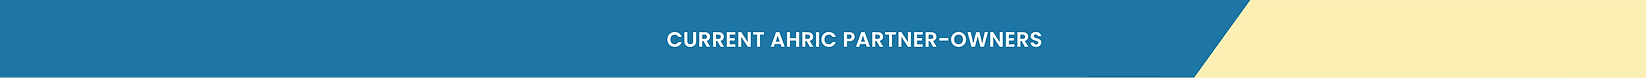 AHRIC_Current Partner-Owners-08.png